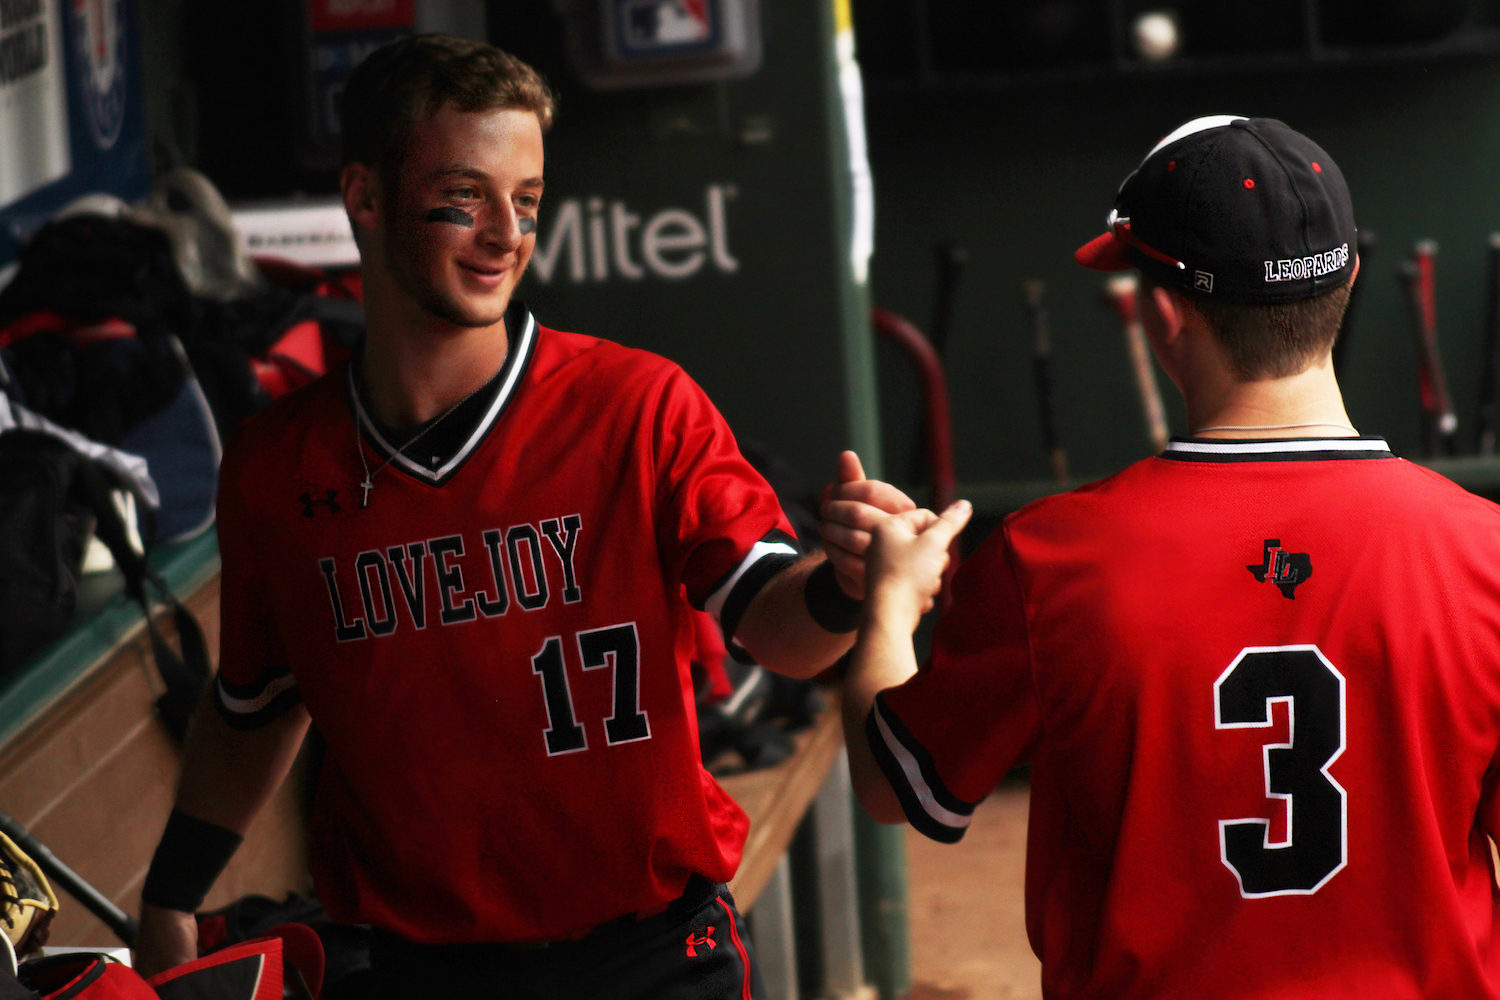 Junior+Benjamin+Nopper+congratulates+Senior+Cade+Smitherman+at+the+end+of+the+fourth+inning.+